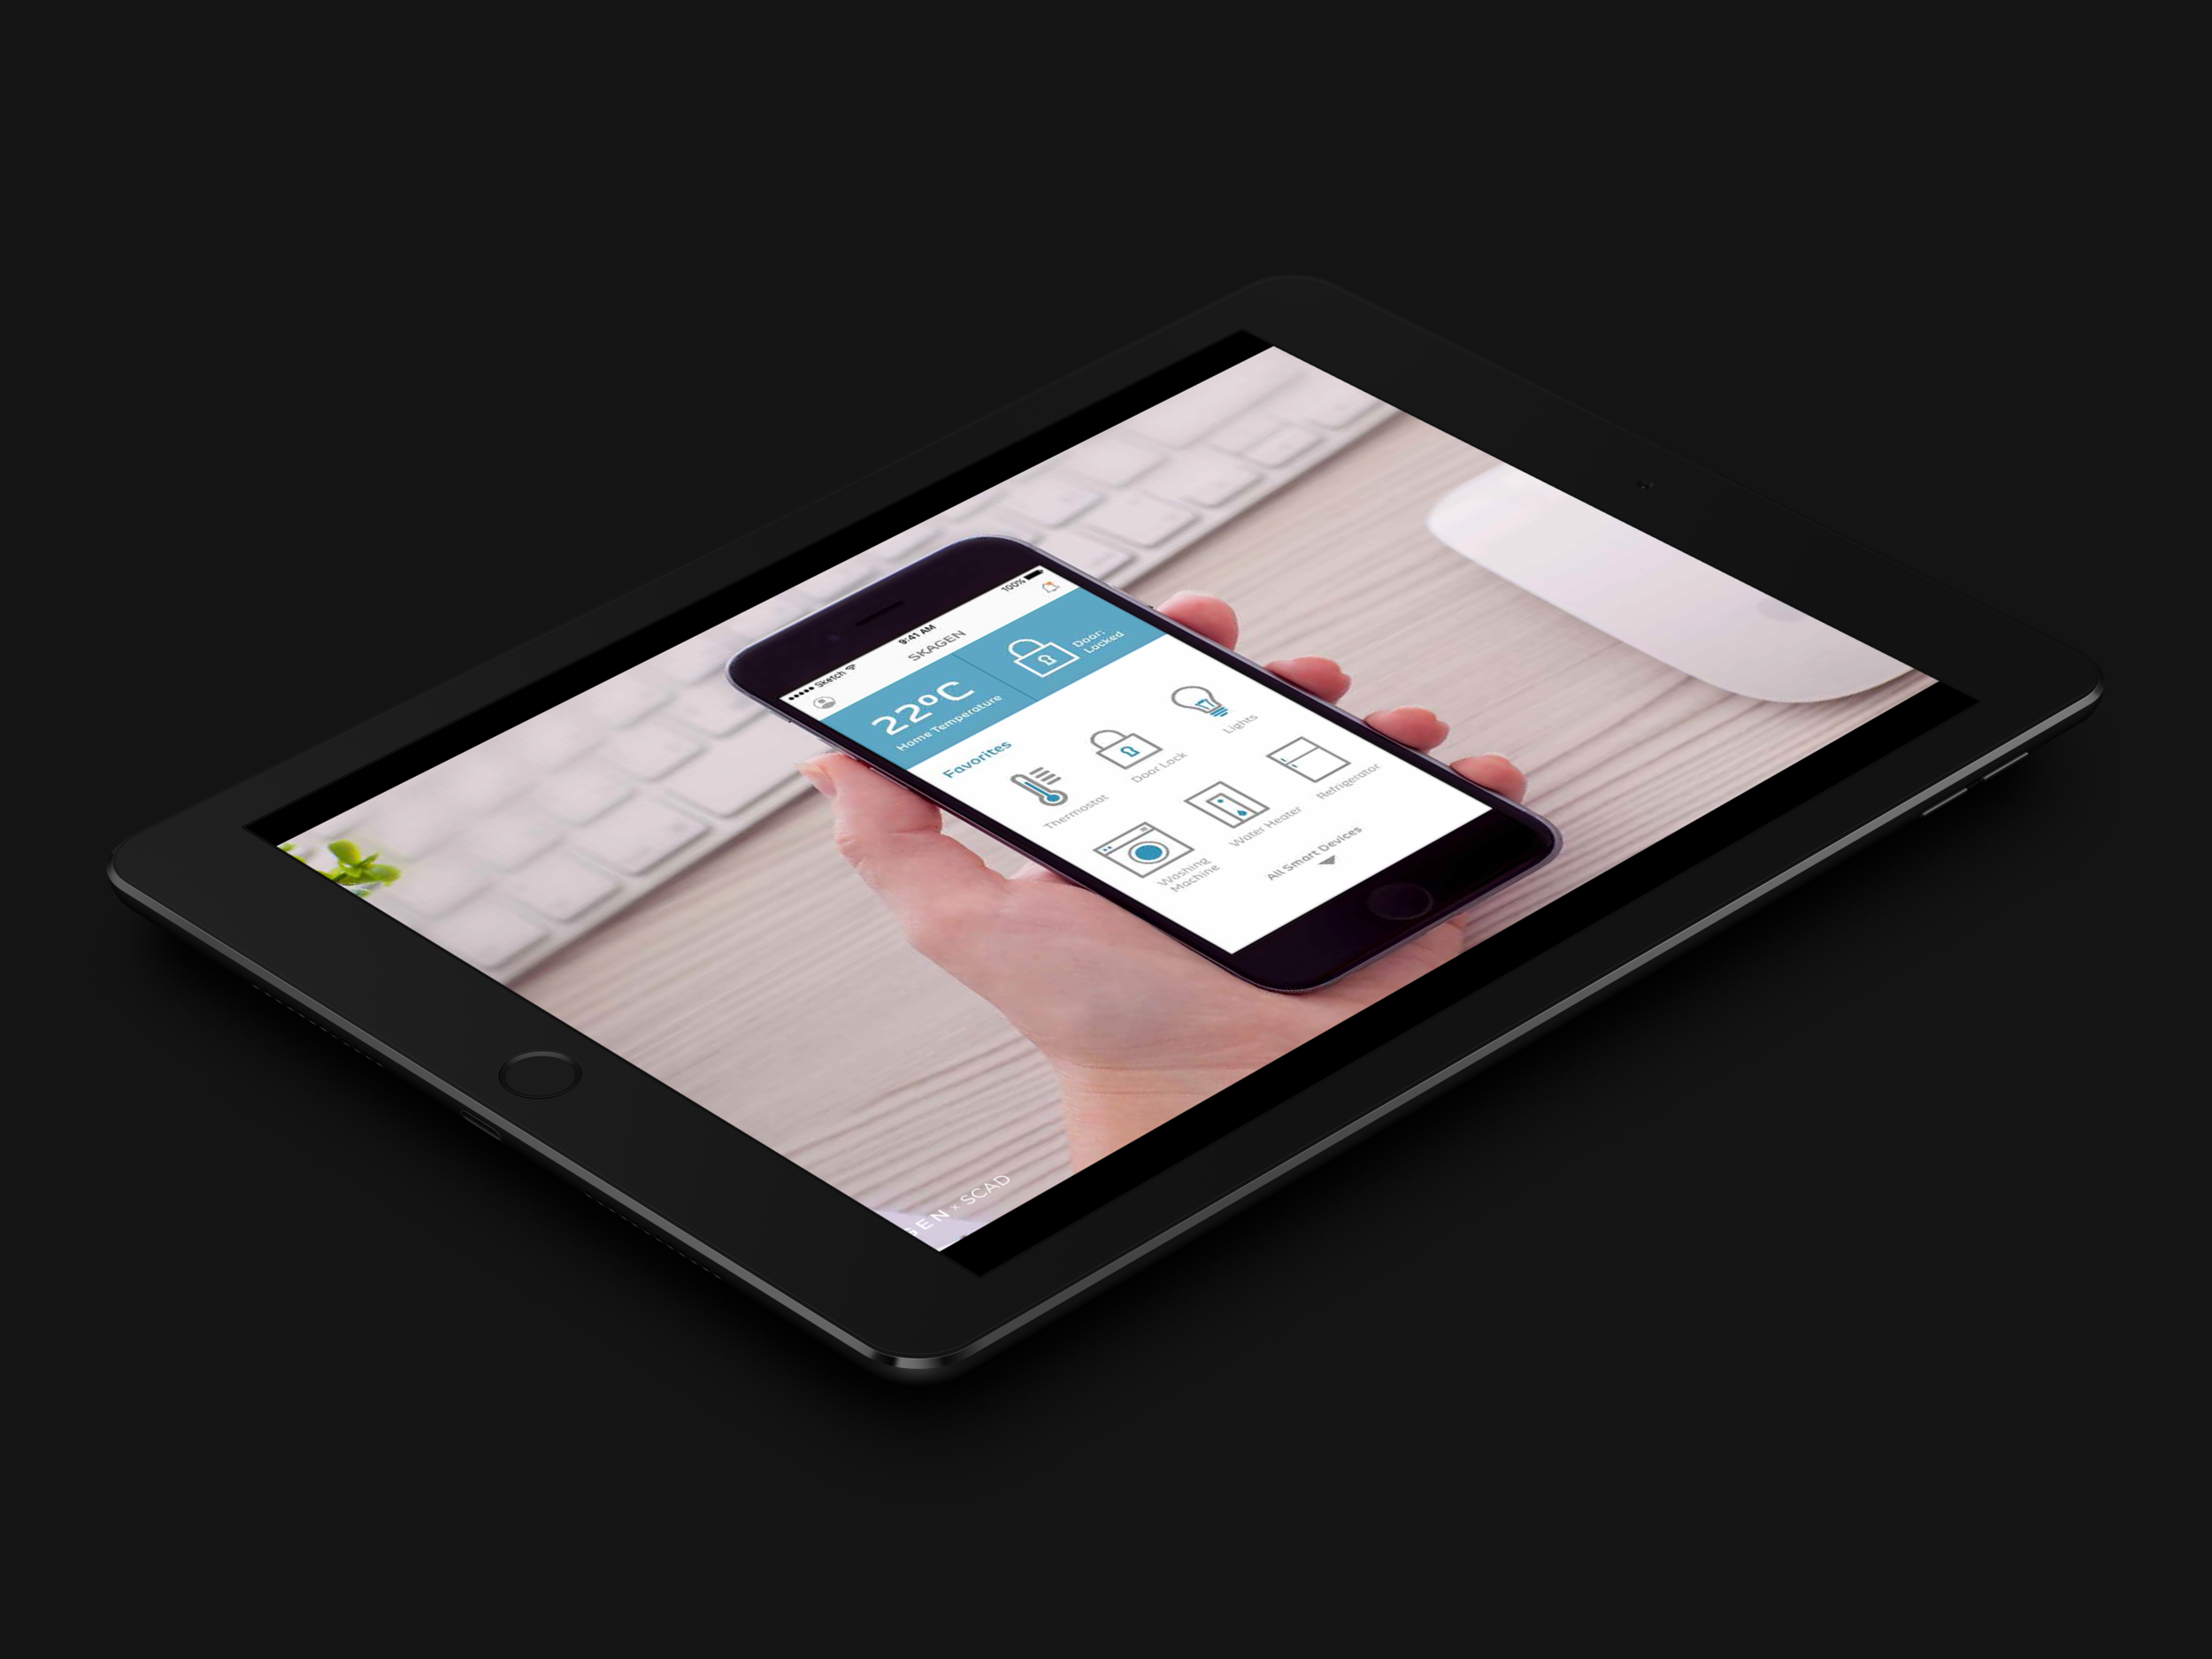 - Example of an interface development designed for the wearer of the accessory it is placed in.